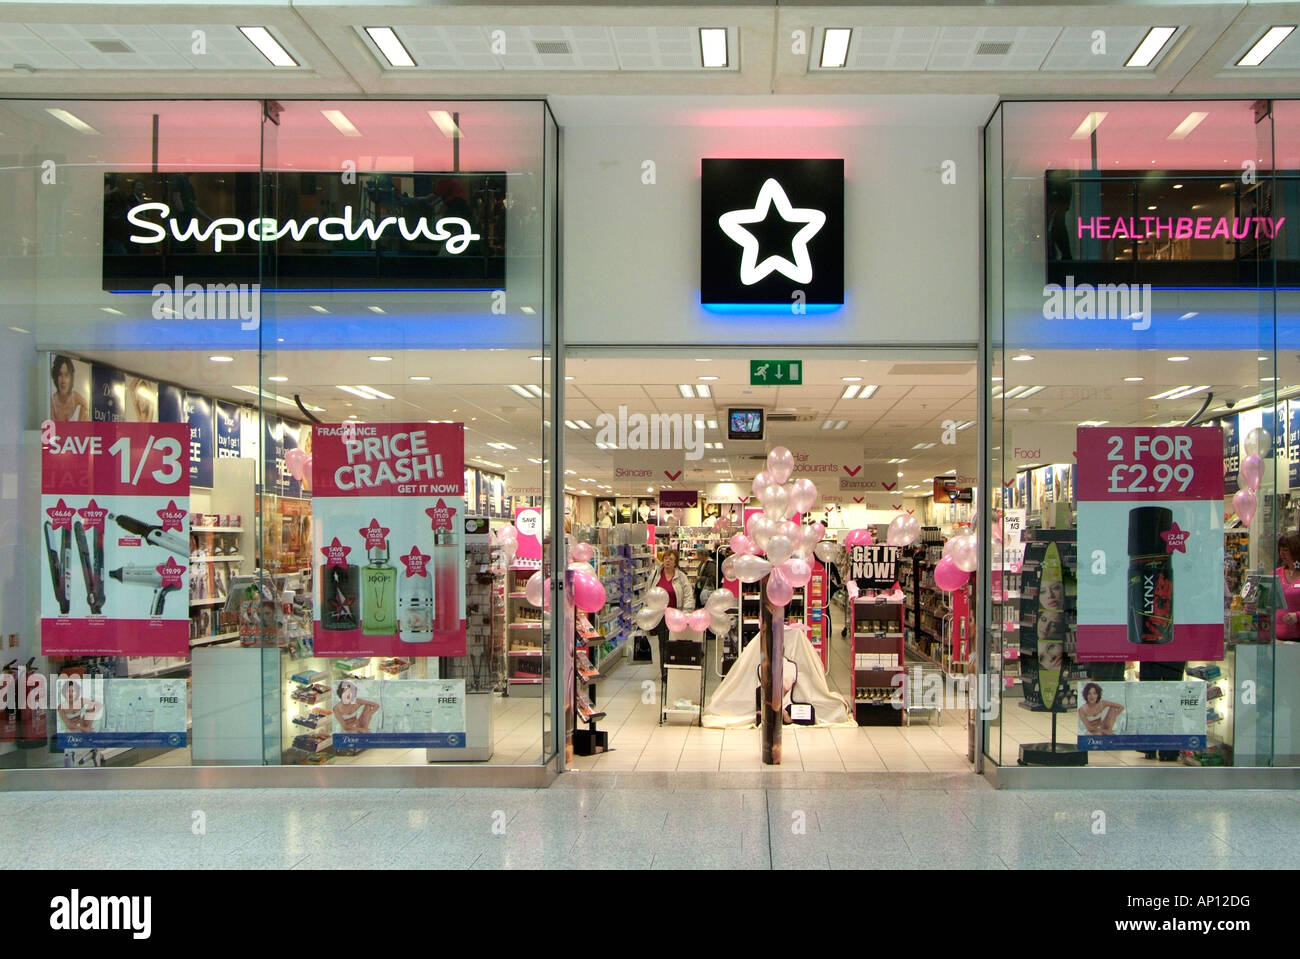 For years, Superdrug has been a strong contender of go-to high street stores for all things makeup, skincare and toiletries. With a wealth of health and beauty knowledge on offer too, you can always find what you need at Superdrug.